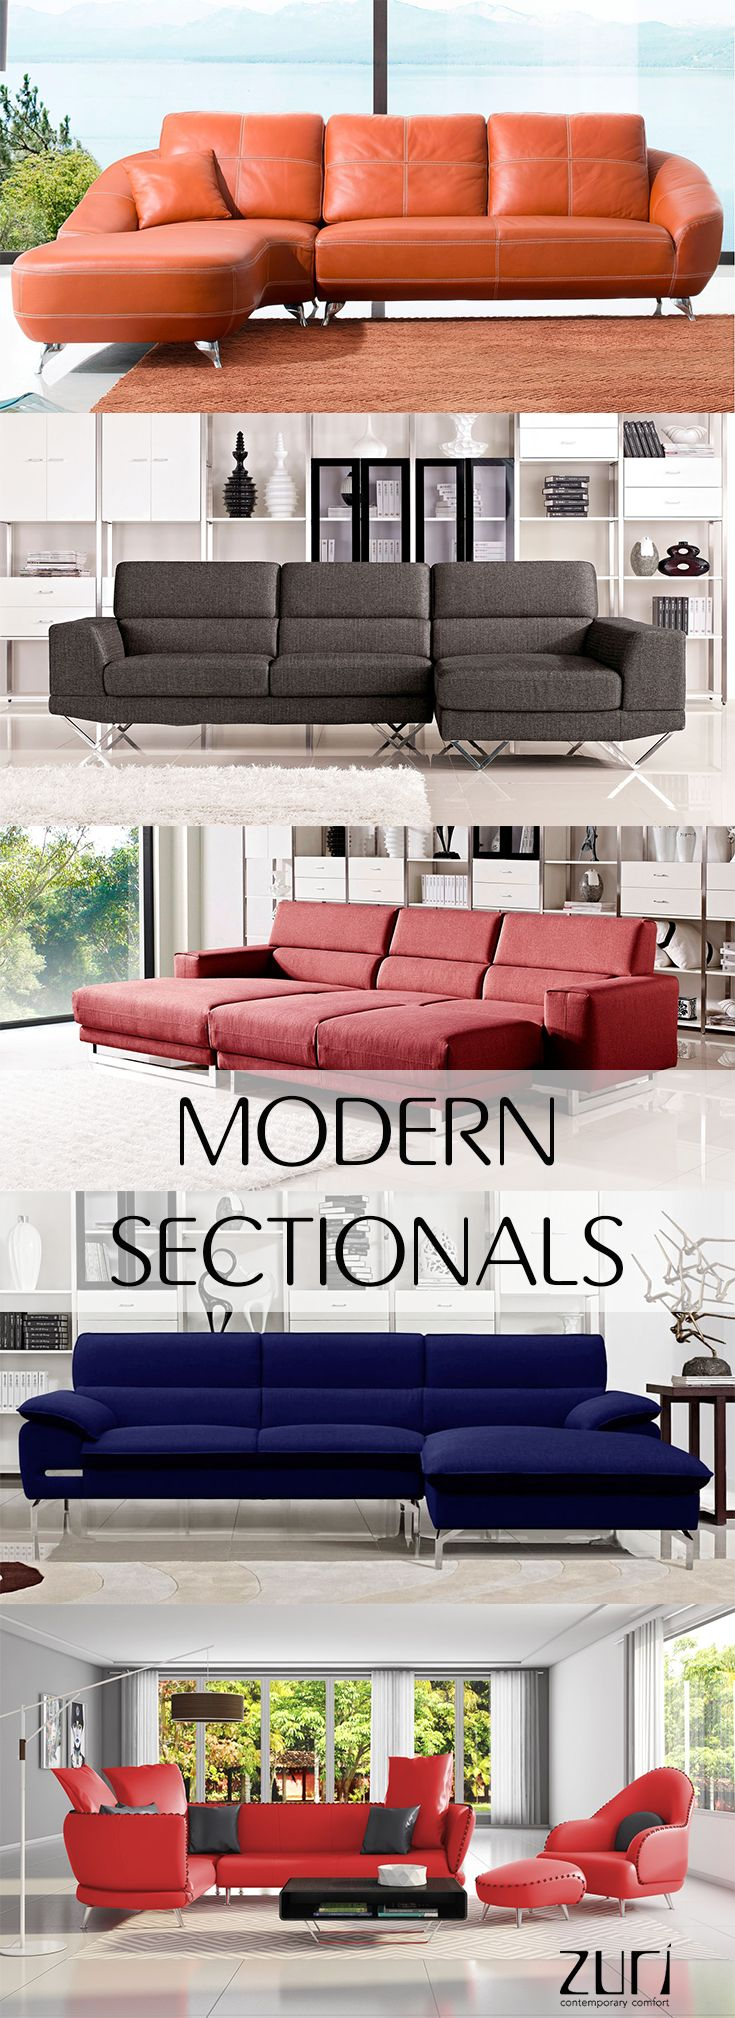 Shop A Large Selection Of Modern Sectionals At Zuri Furniture. Zuri  Furniture Provides High Quality, Premium Furniture For ...